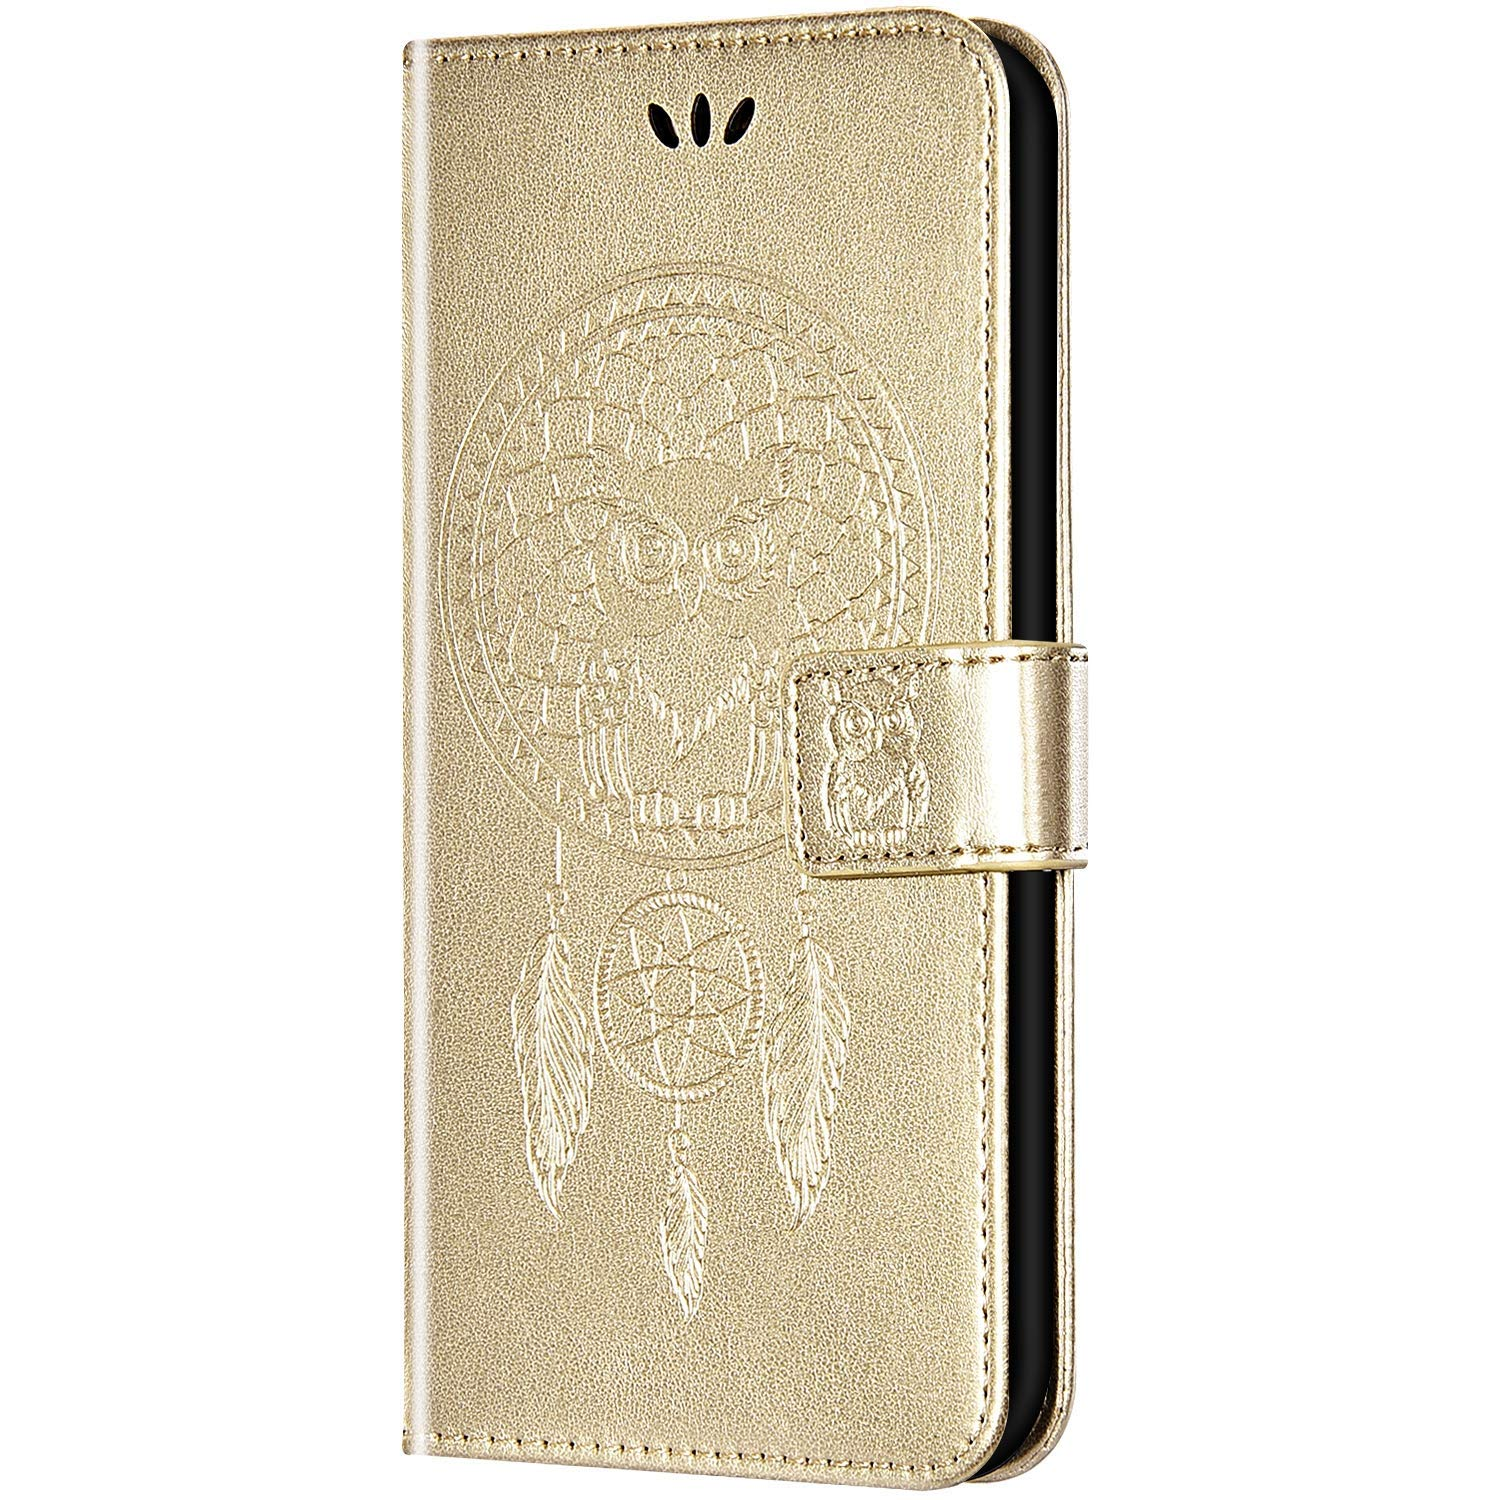 Case for Huawei P30 Pro Flip Case Ultra Slim PU Leather Wallet with Card Holder/Slot and Magnetic Closure Shockproof Cartoon Animal Owl Embossed Protective Cover for Huawei P30 Pro,Gold by ikasus